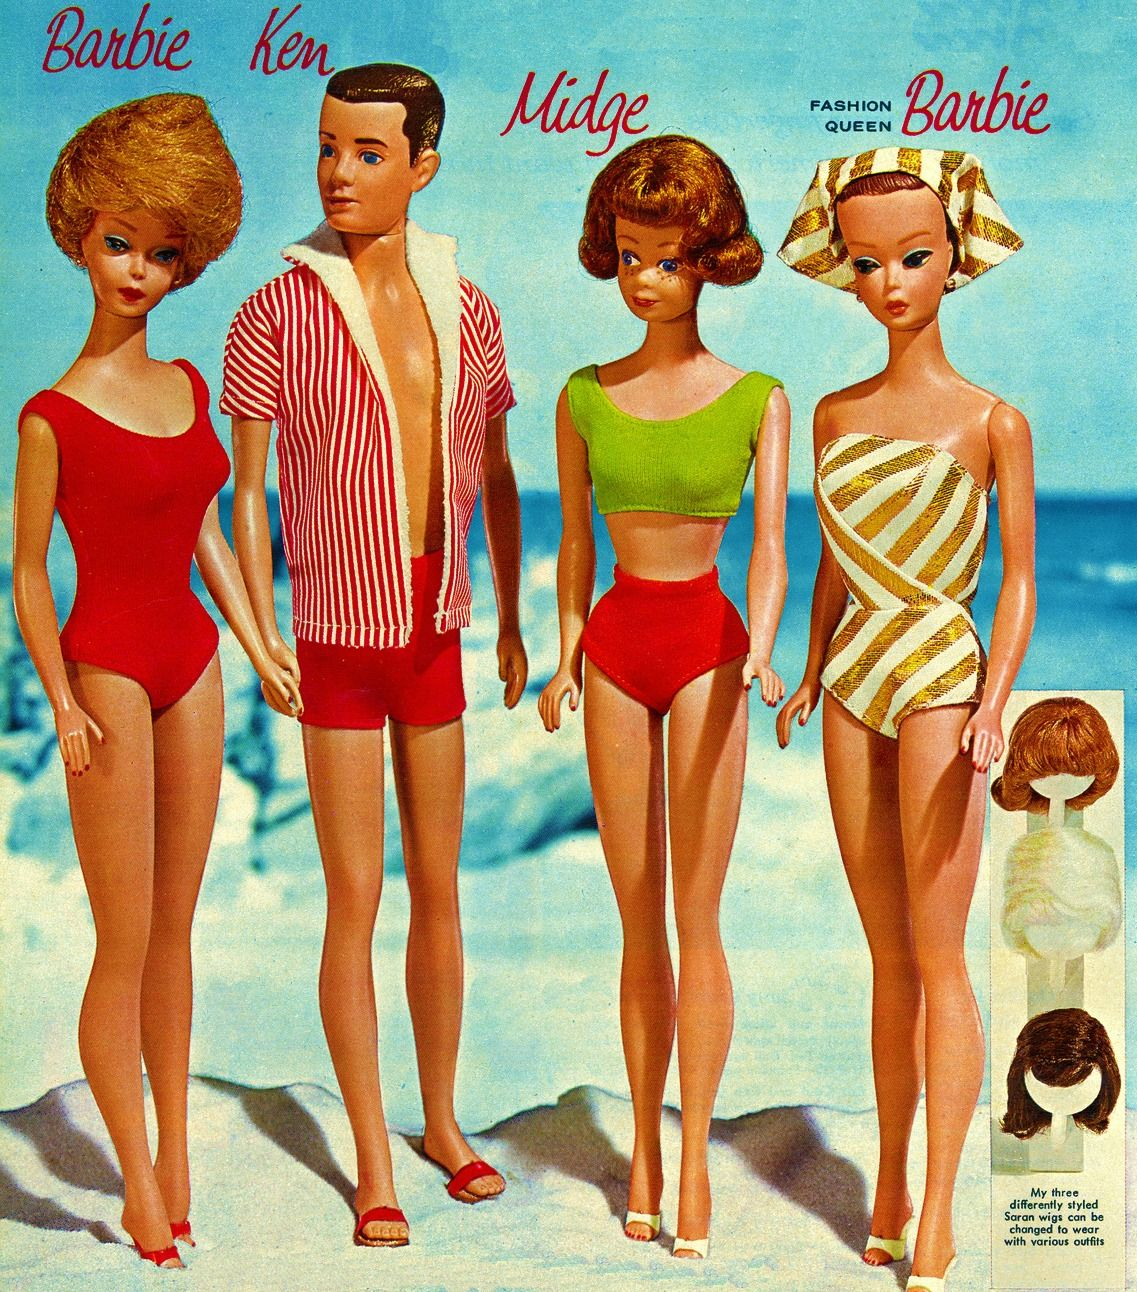 Barbie and Friends, 1962 Sears catalog My first Barbie was the one on the left, later I acquired Ken and the Barbie on the right.